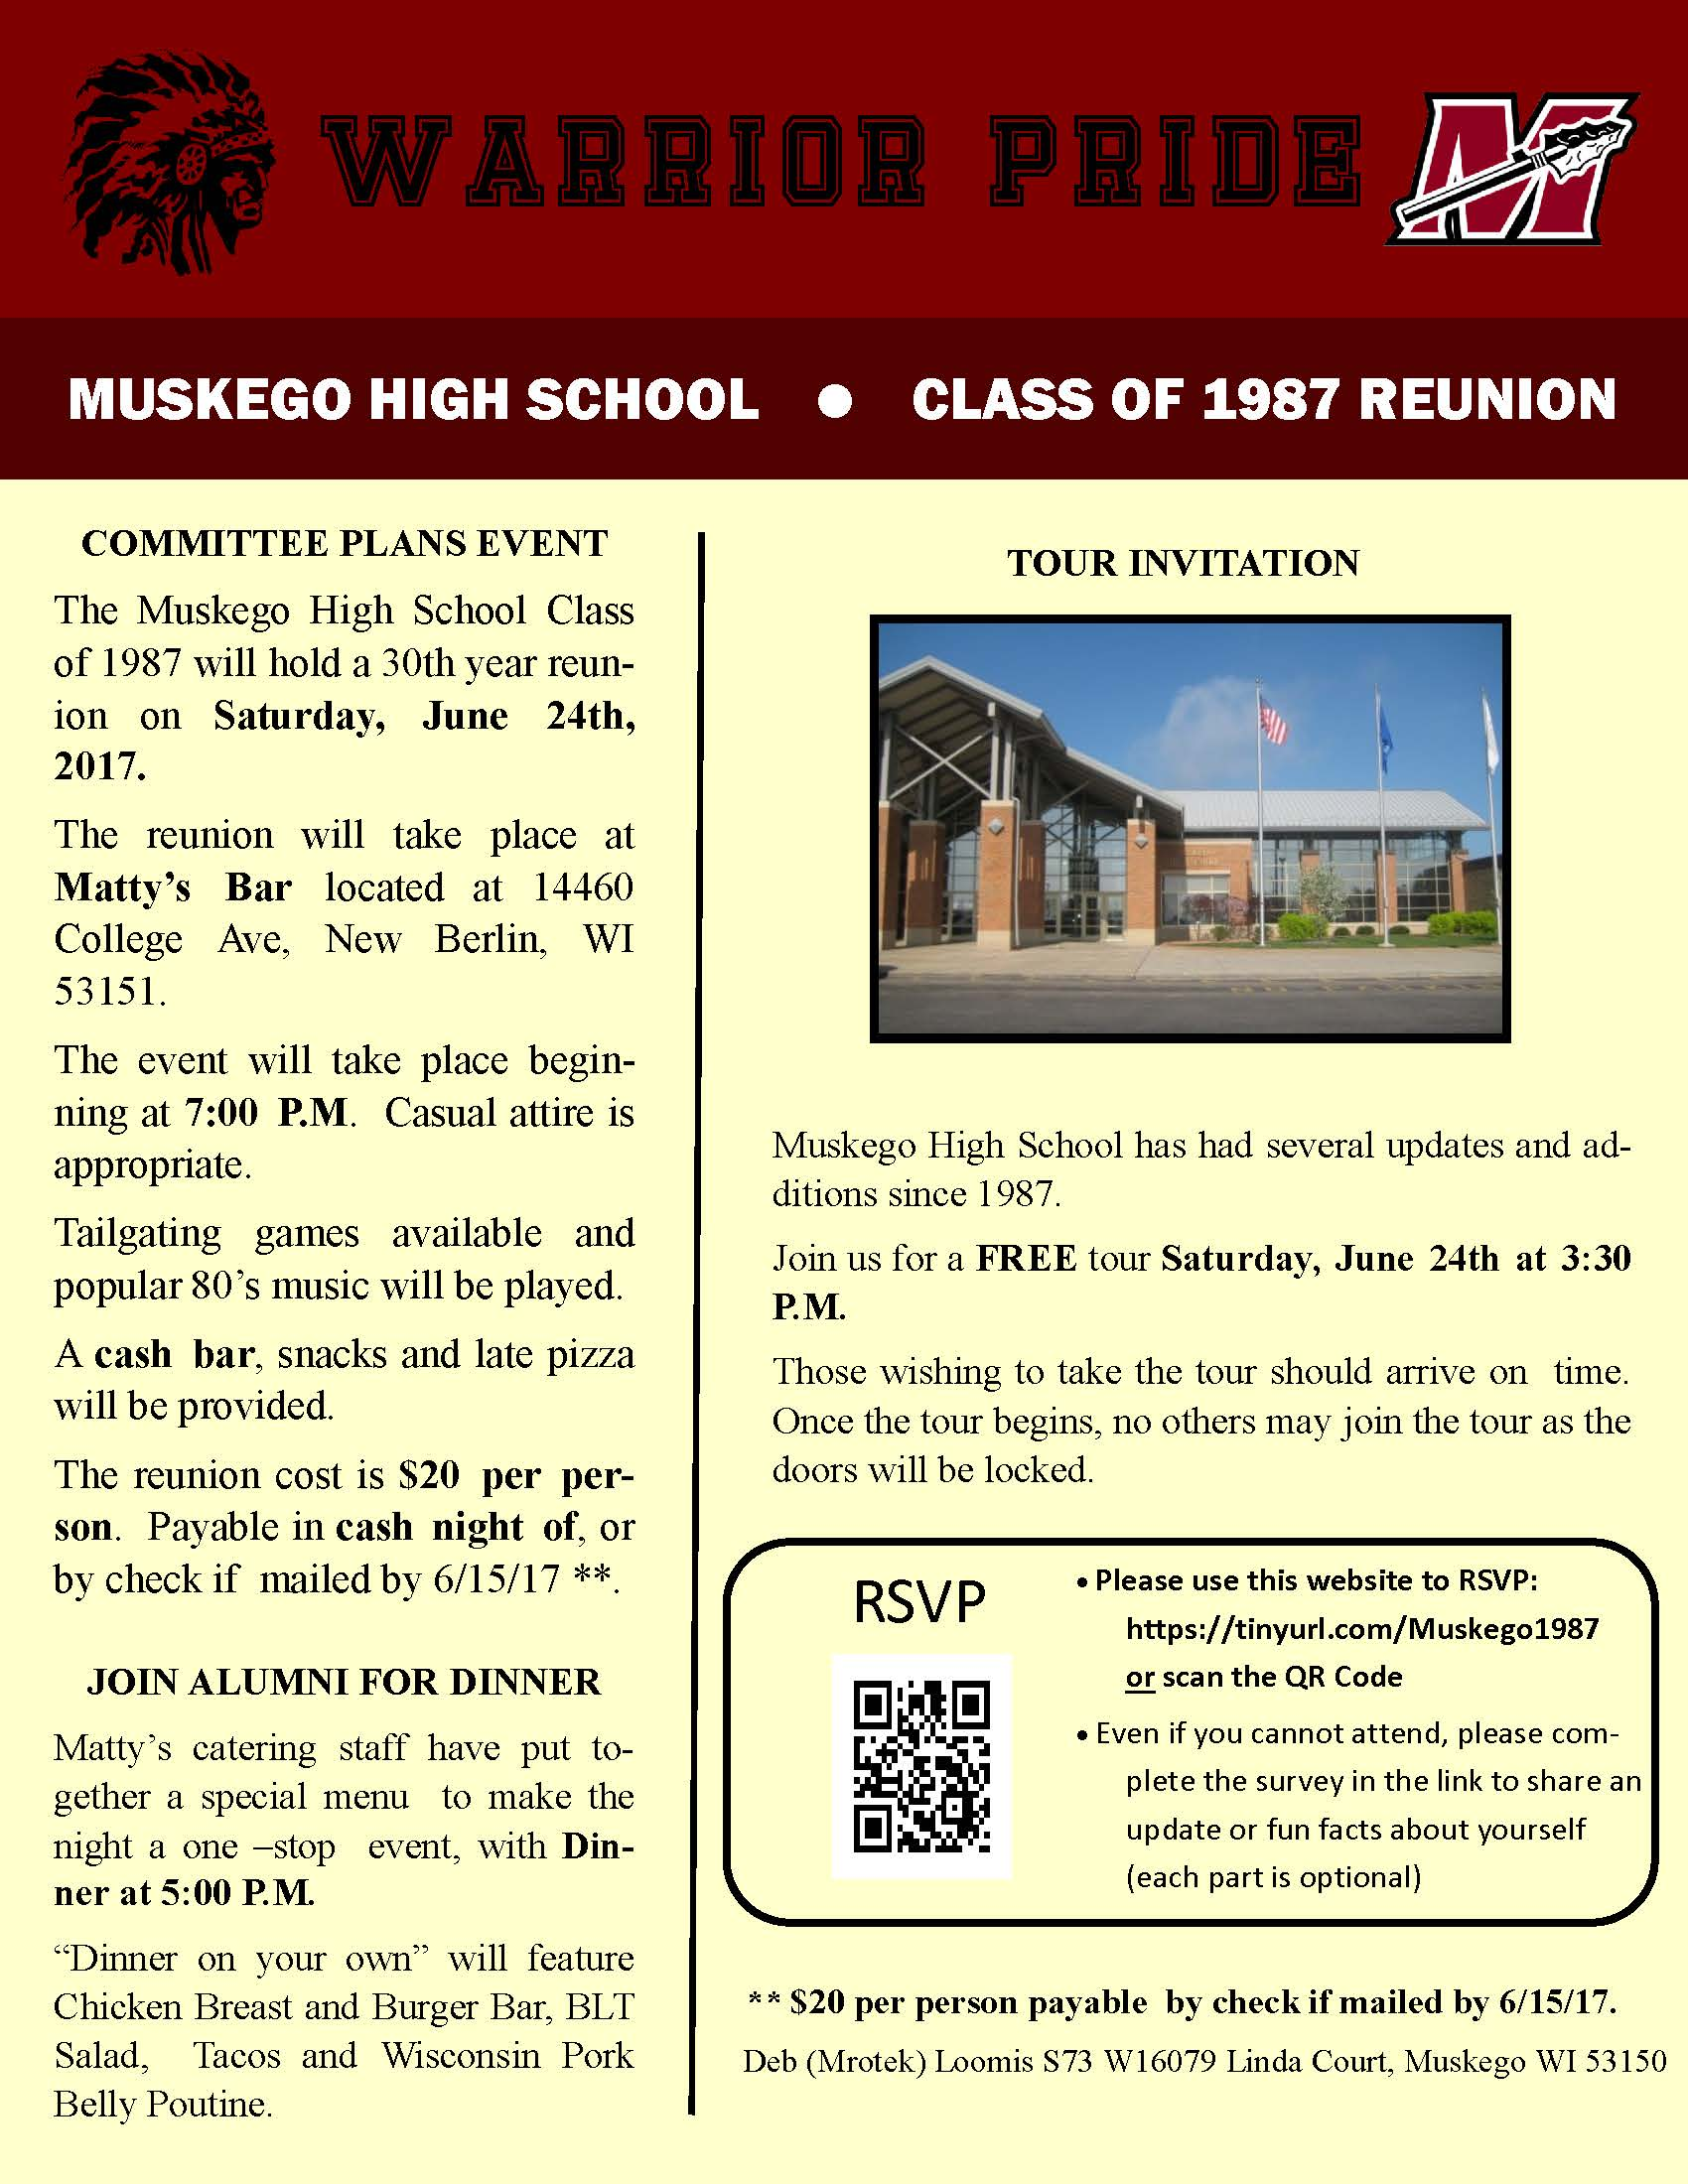 MHS_1987_Reunion_Flyer.jpg